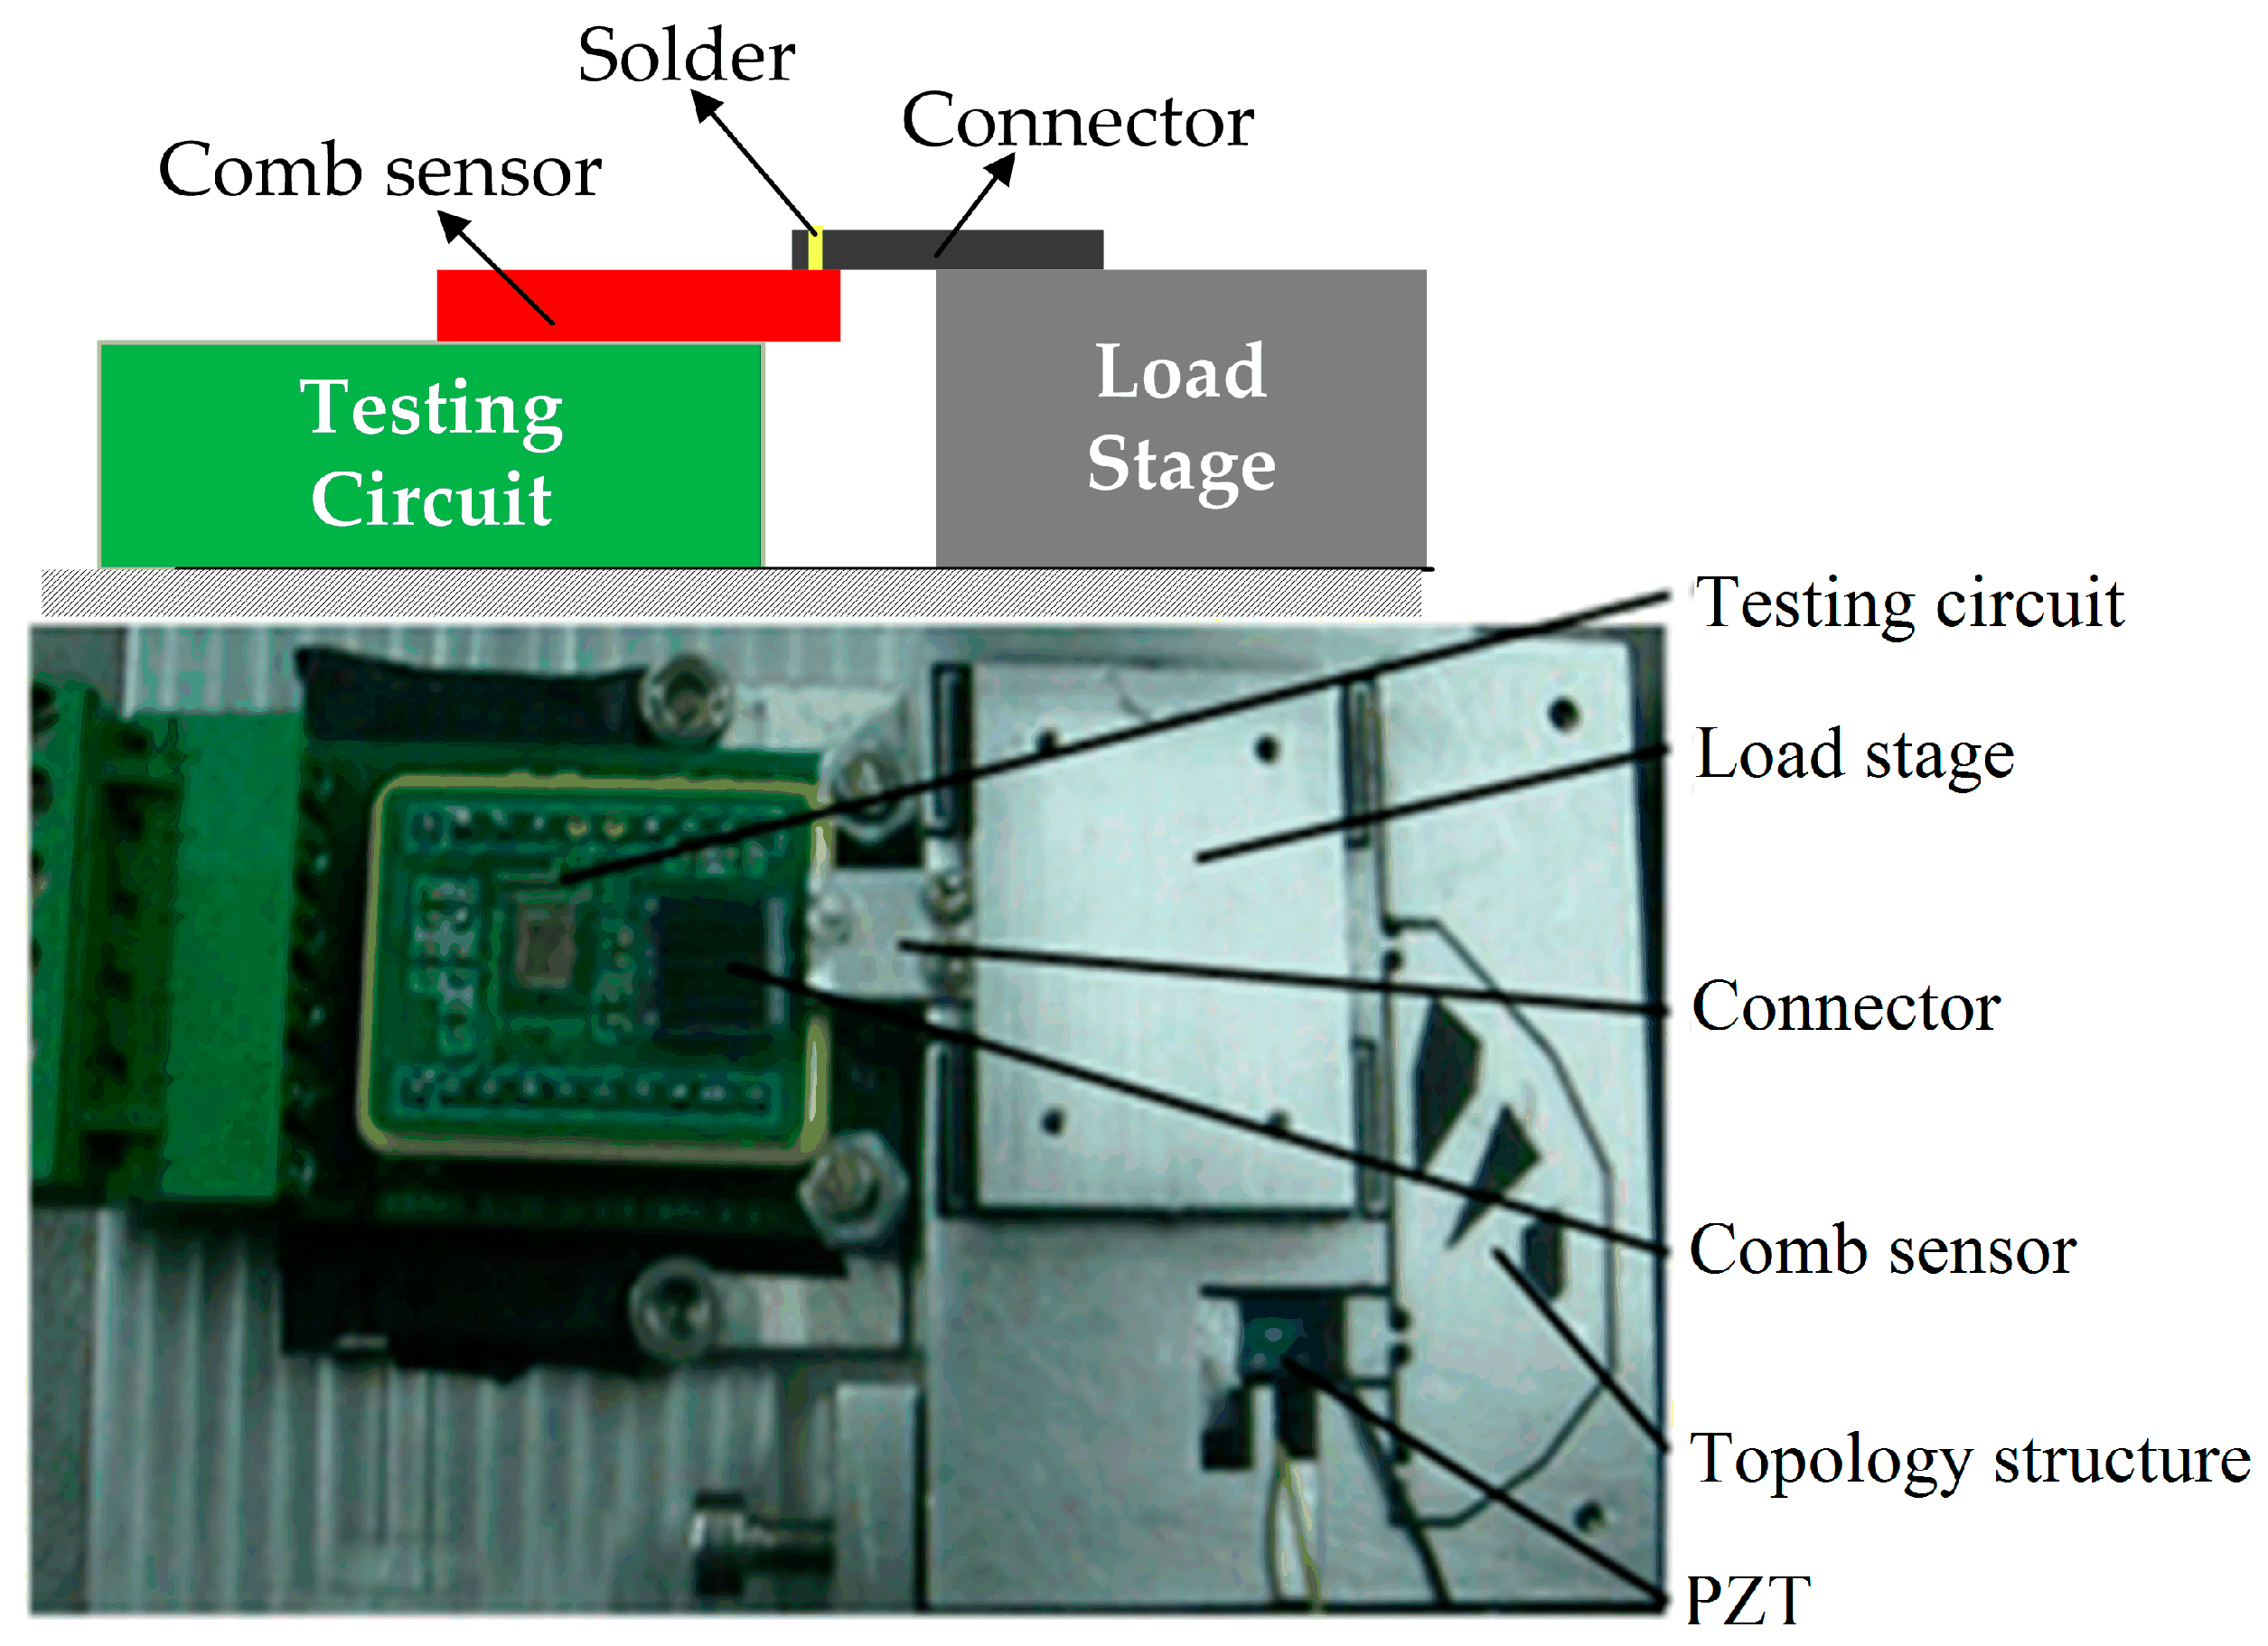 wiring diagram color coding by jorge chu wiring discover your sensors topical collection modeling testing and reliability